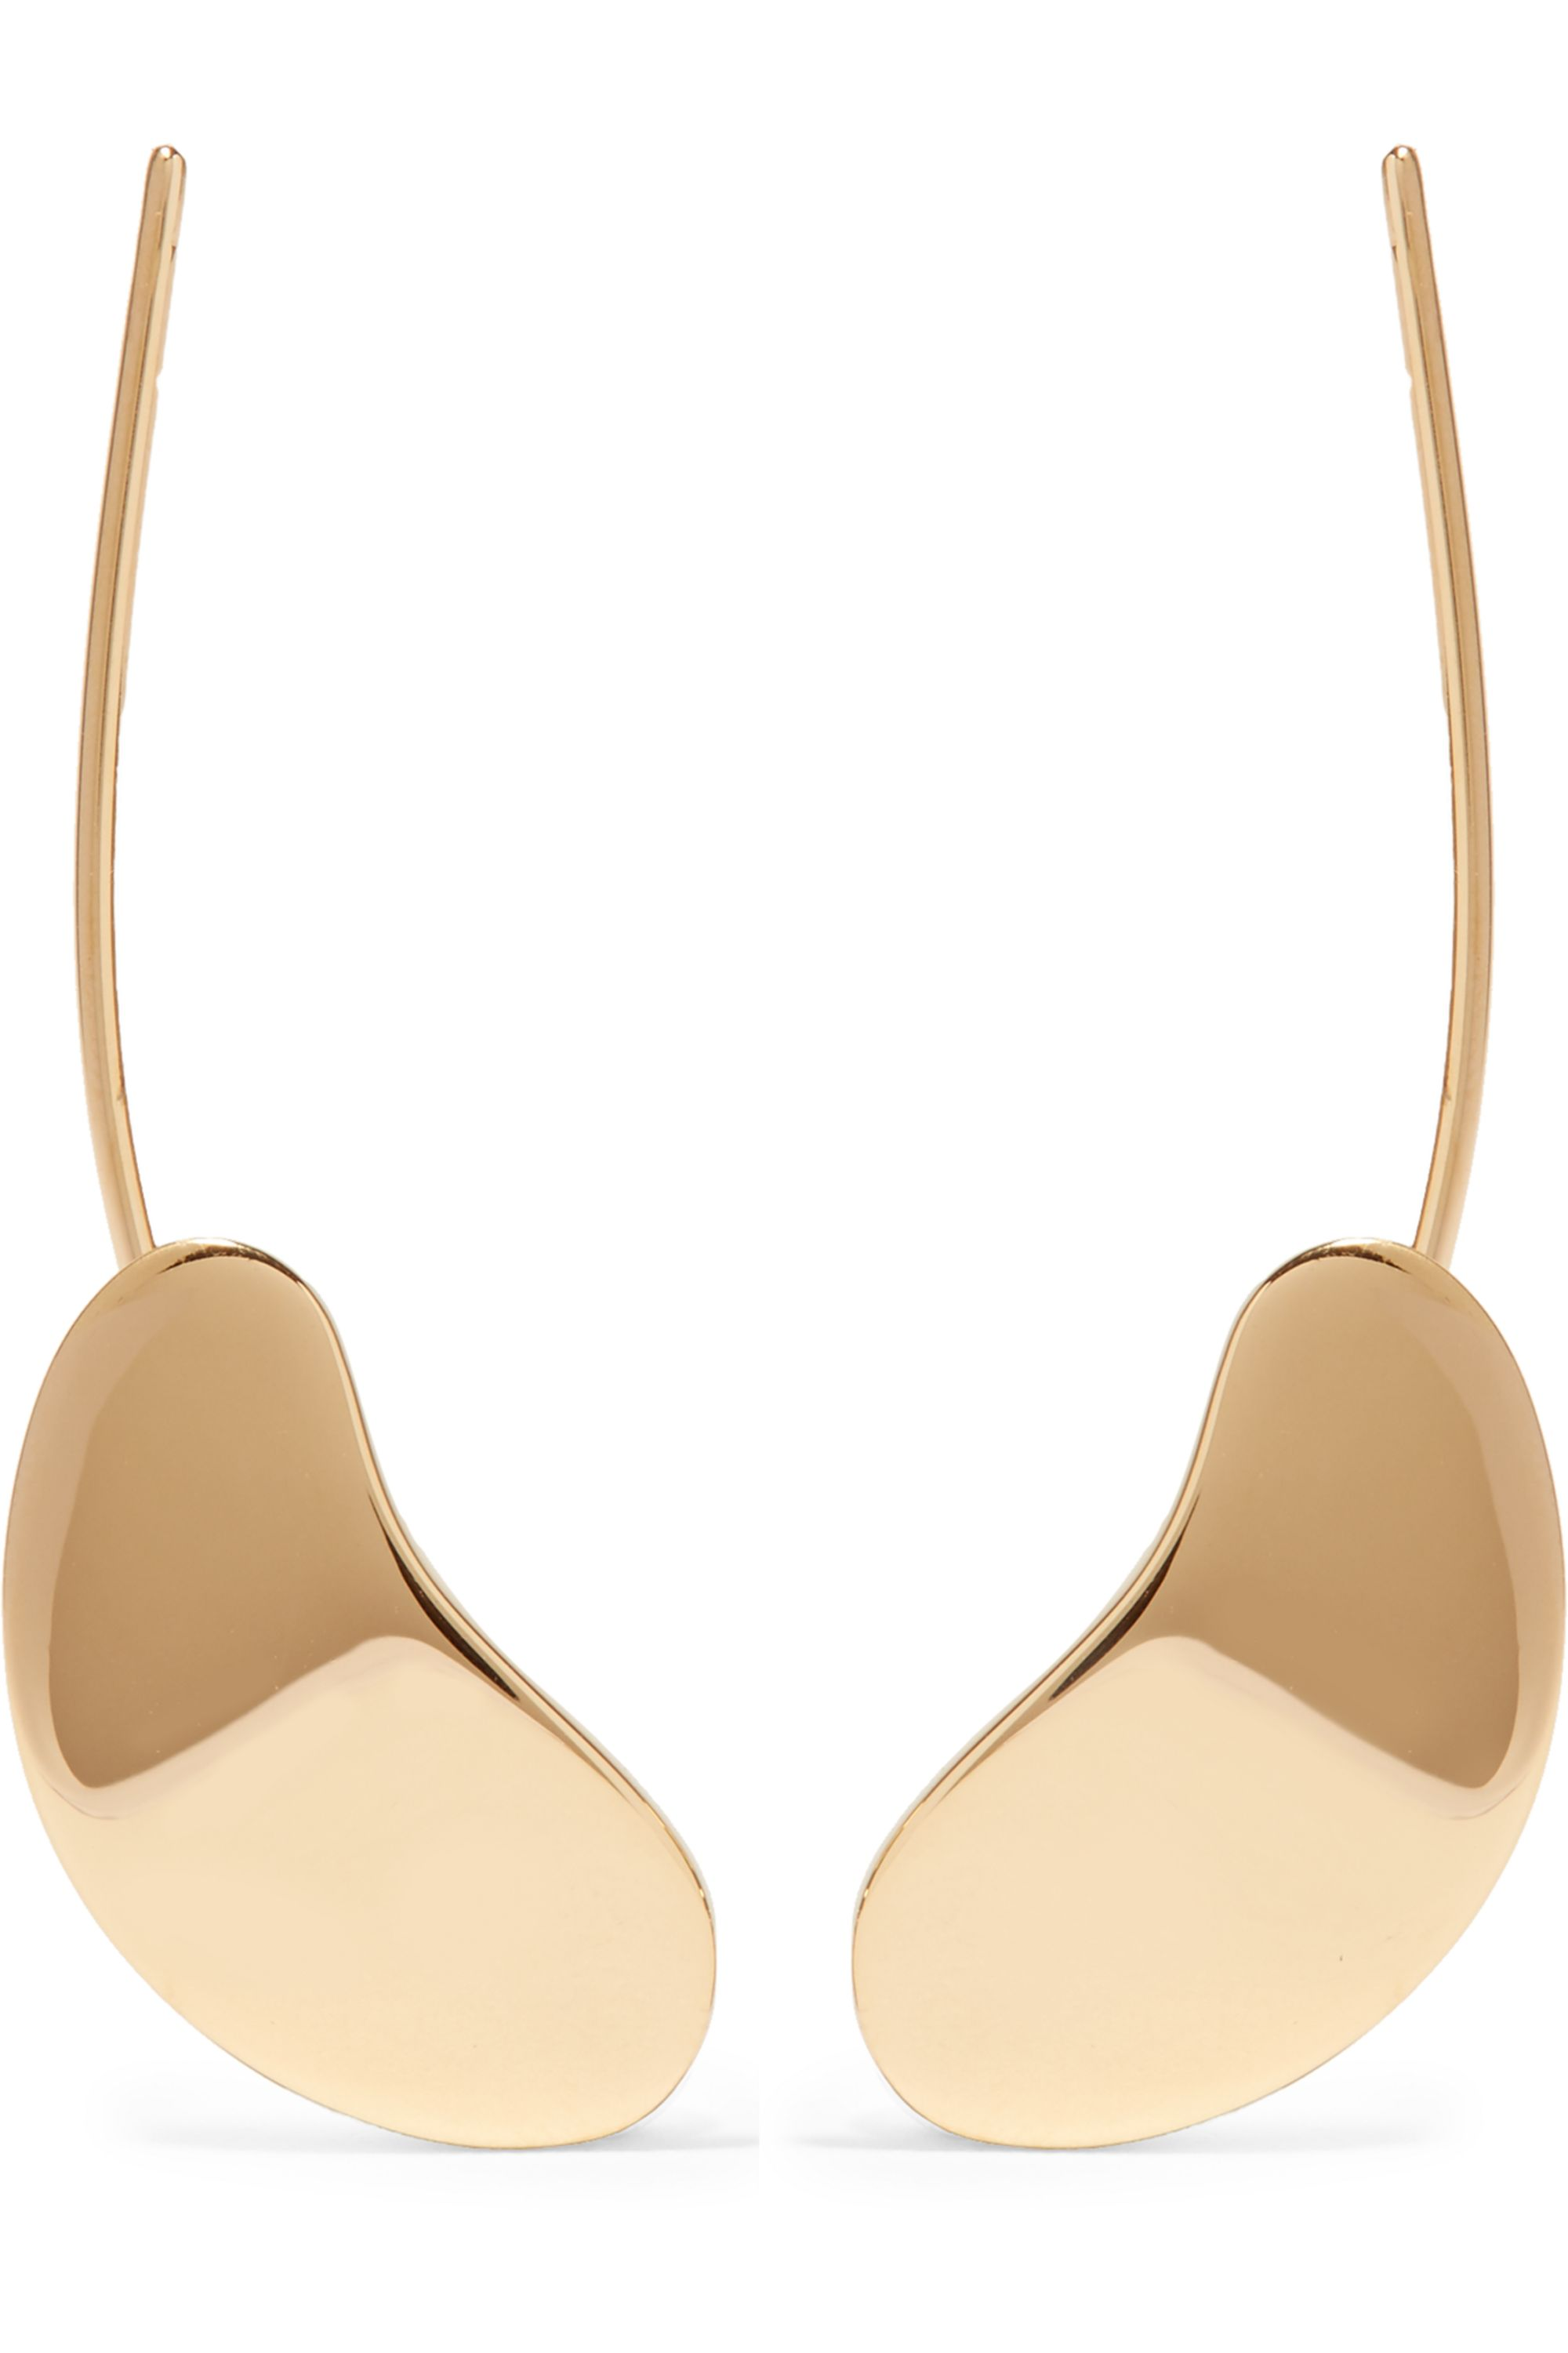 Charlotte Chesnais Nues gold-dipped earrings